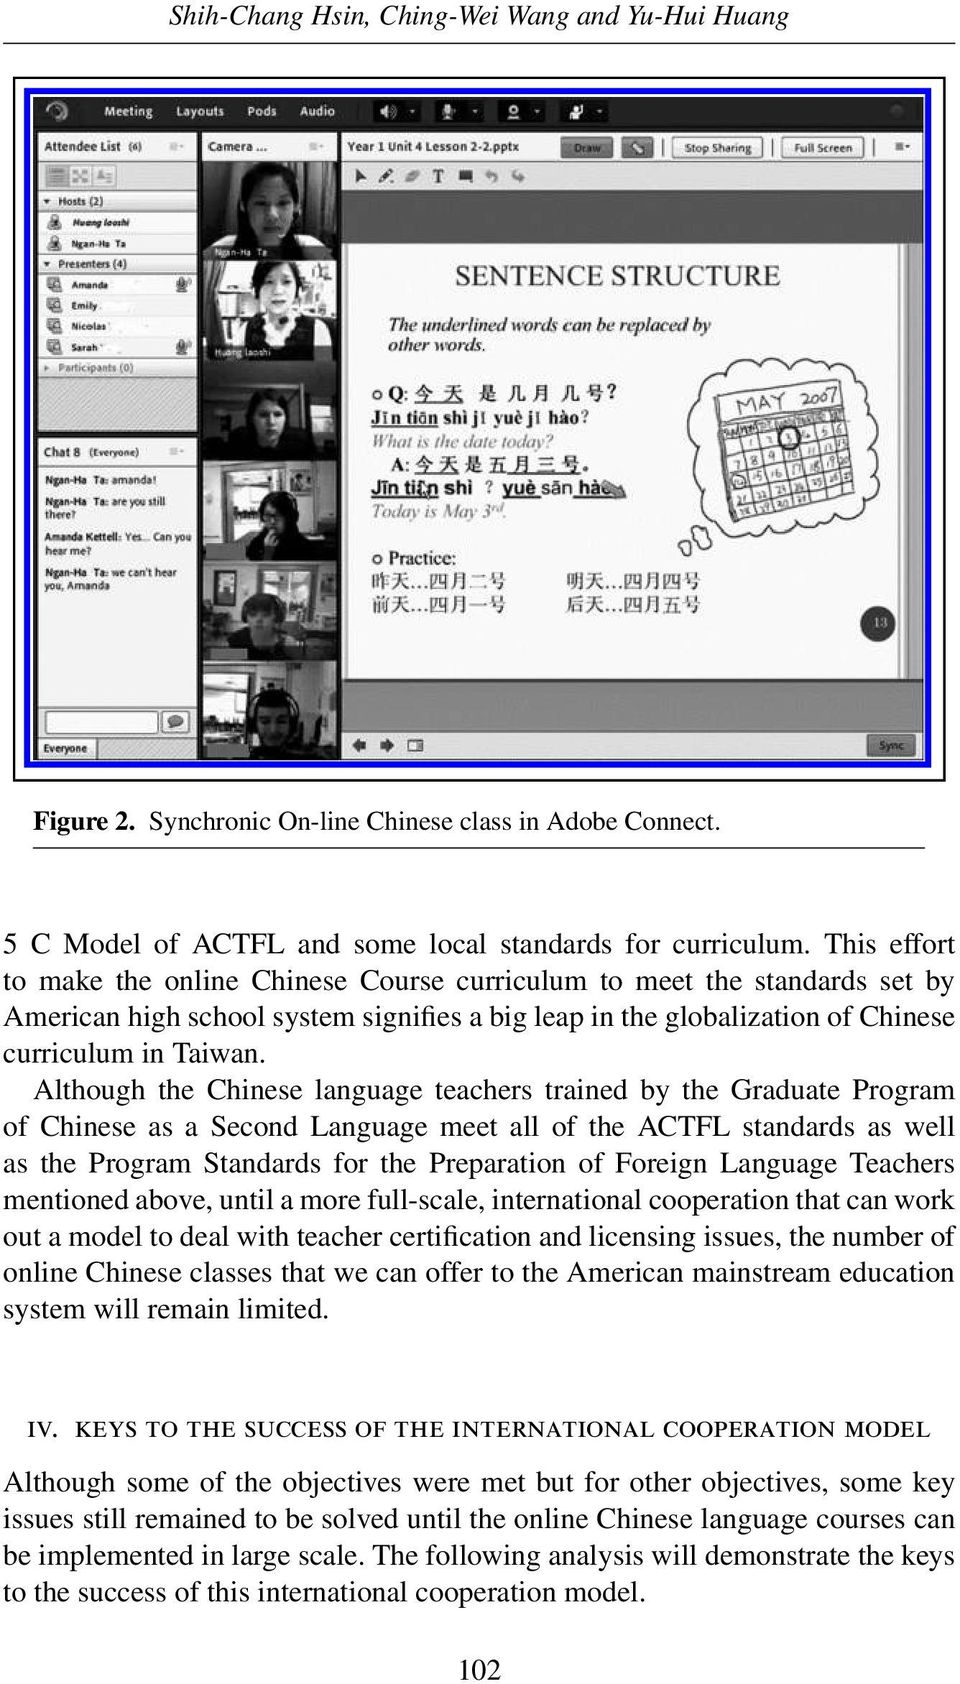 Although the Chinese language teachers trained by the Graduate Program of Chinese as a Second Language meet all of the ACTFL standards as well as the Program Standards for the Preparation of Foreign